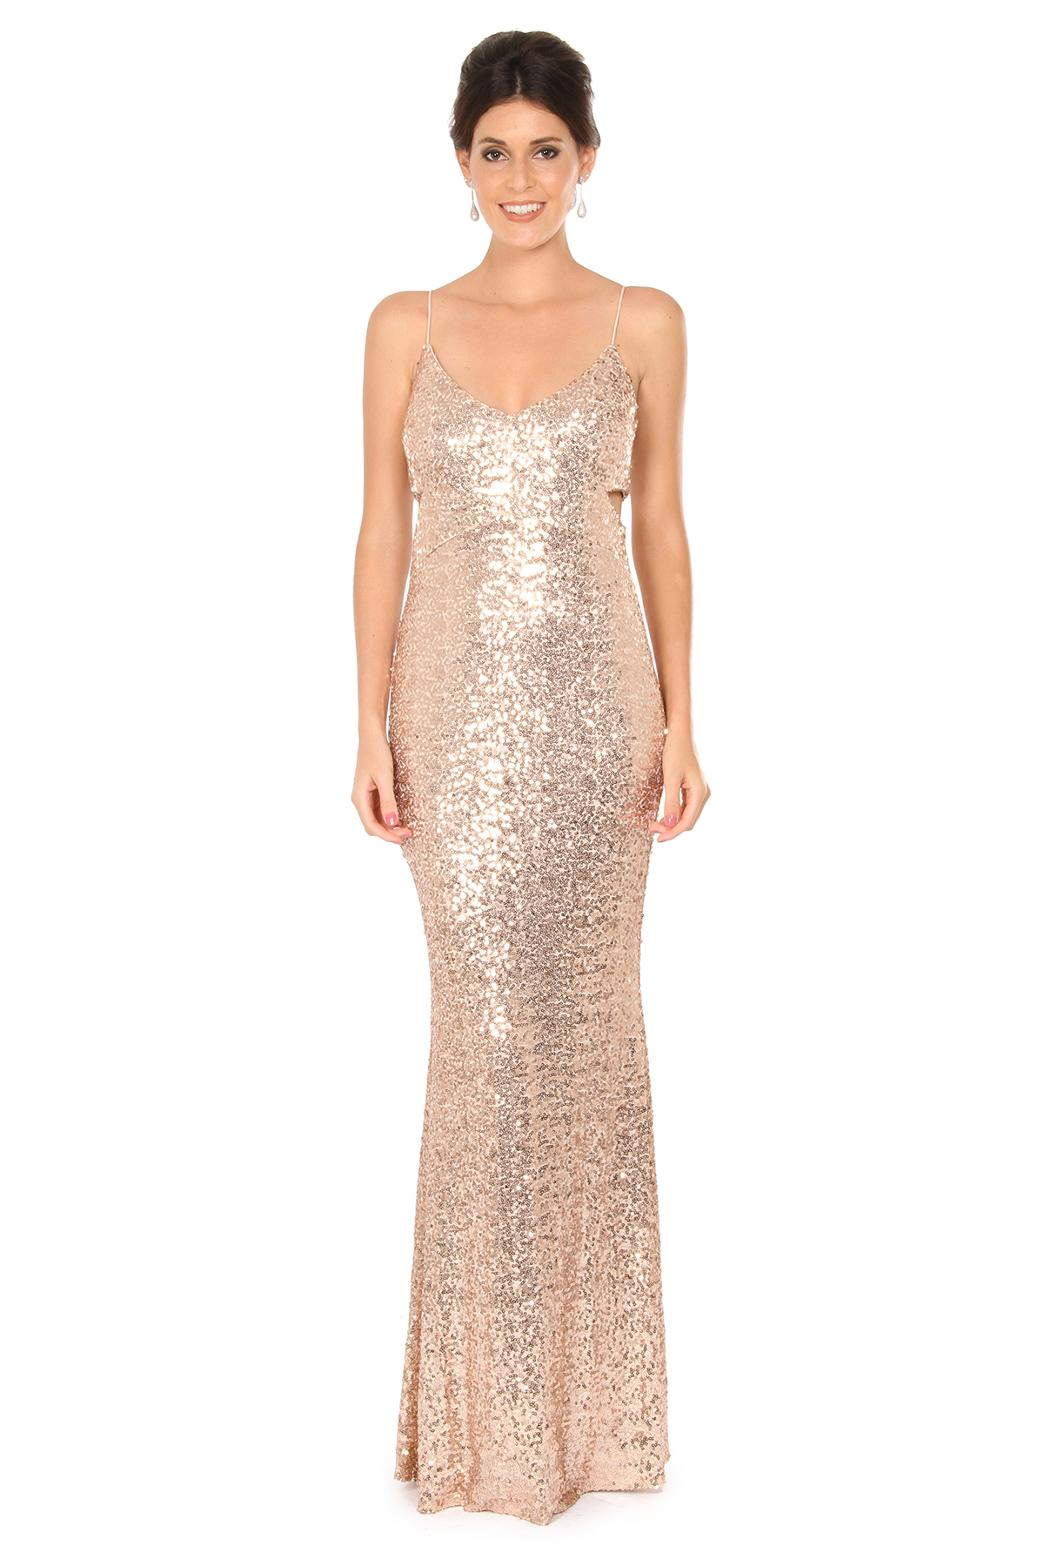 Vestido Dress & Go - Badgley Mischka